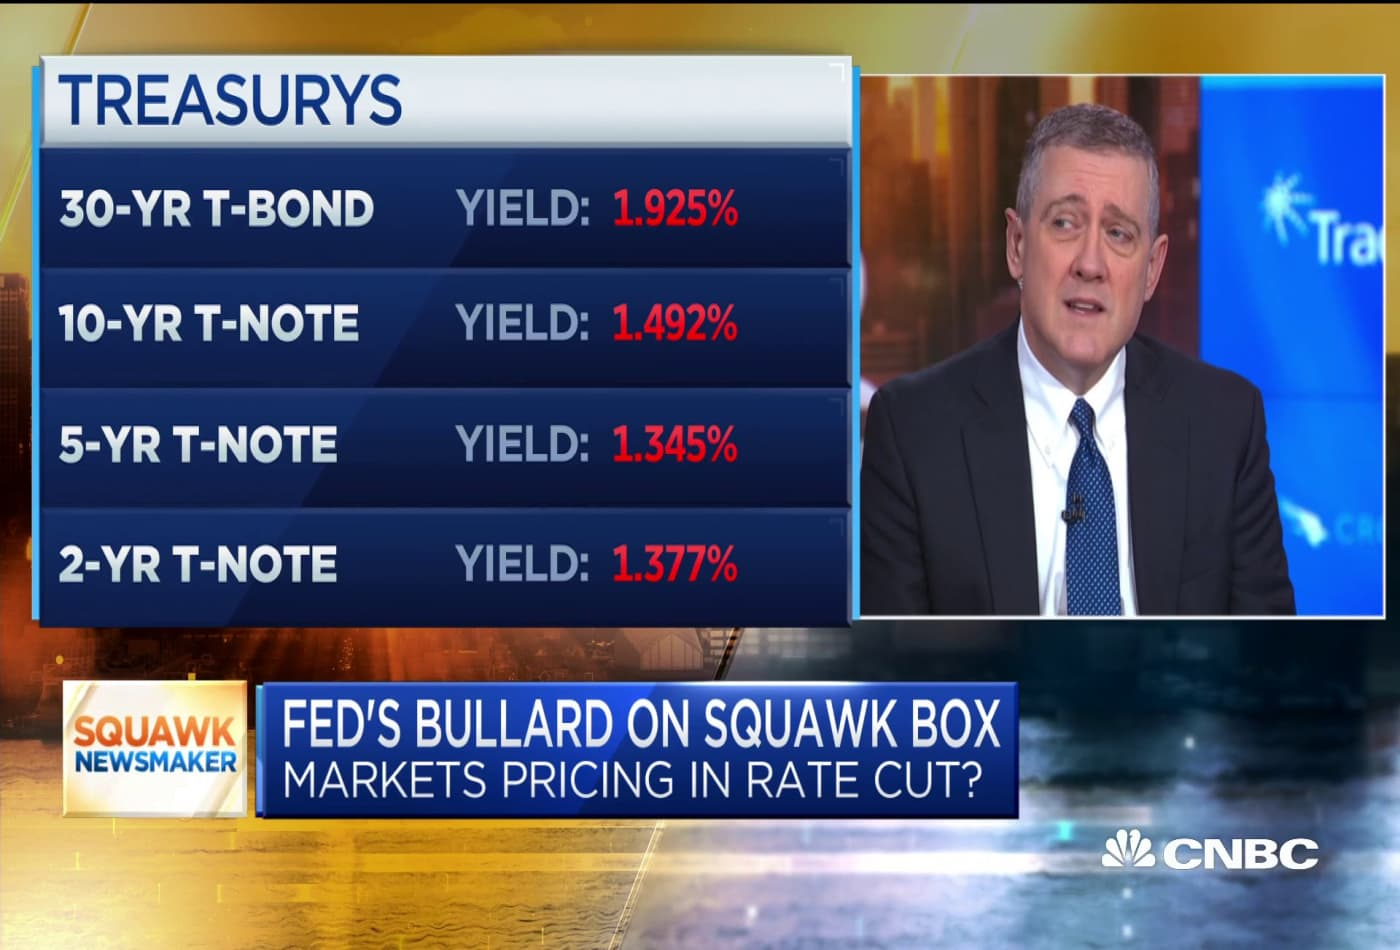 Fed's Bullard: 'Coronavirus will blow over' after temporary shock